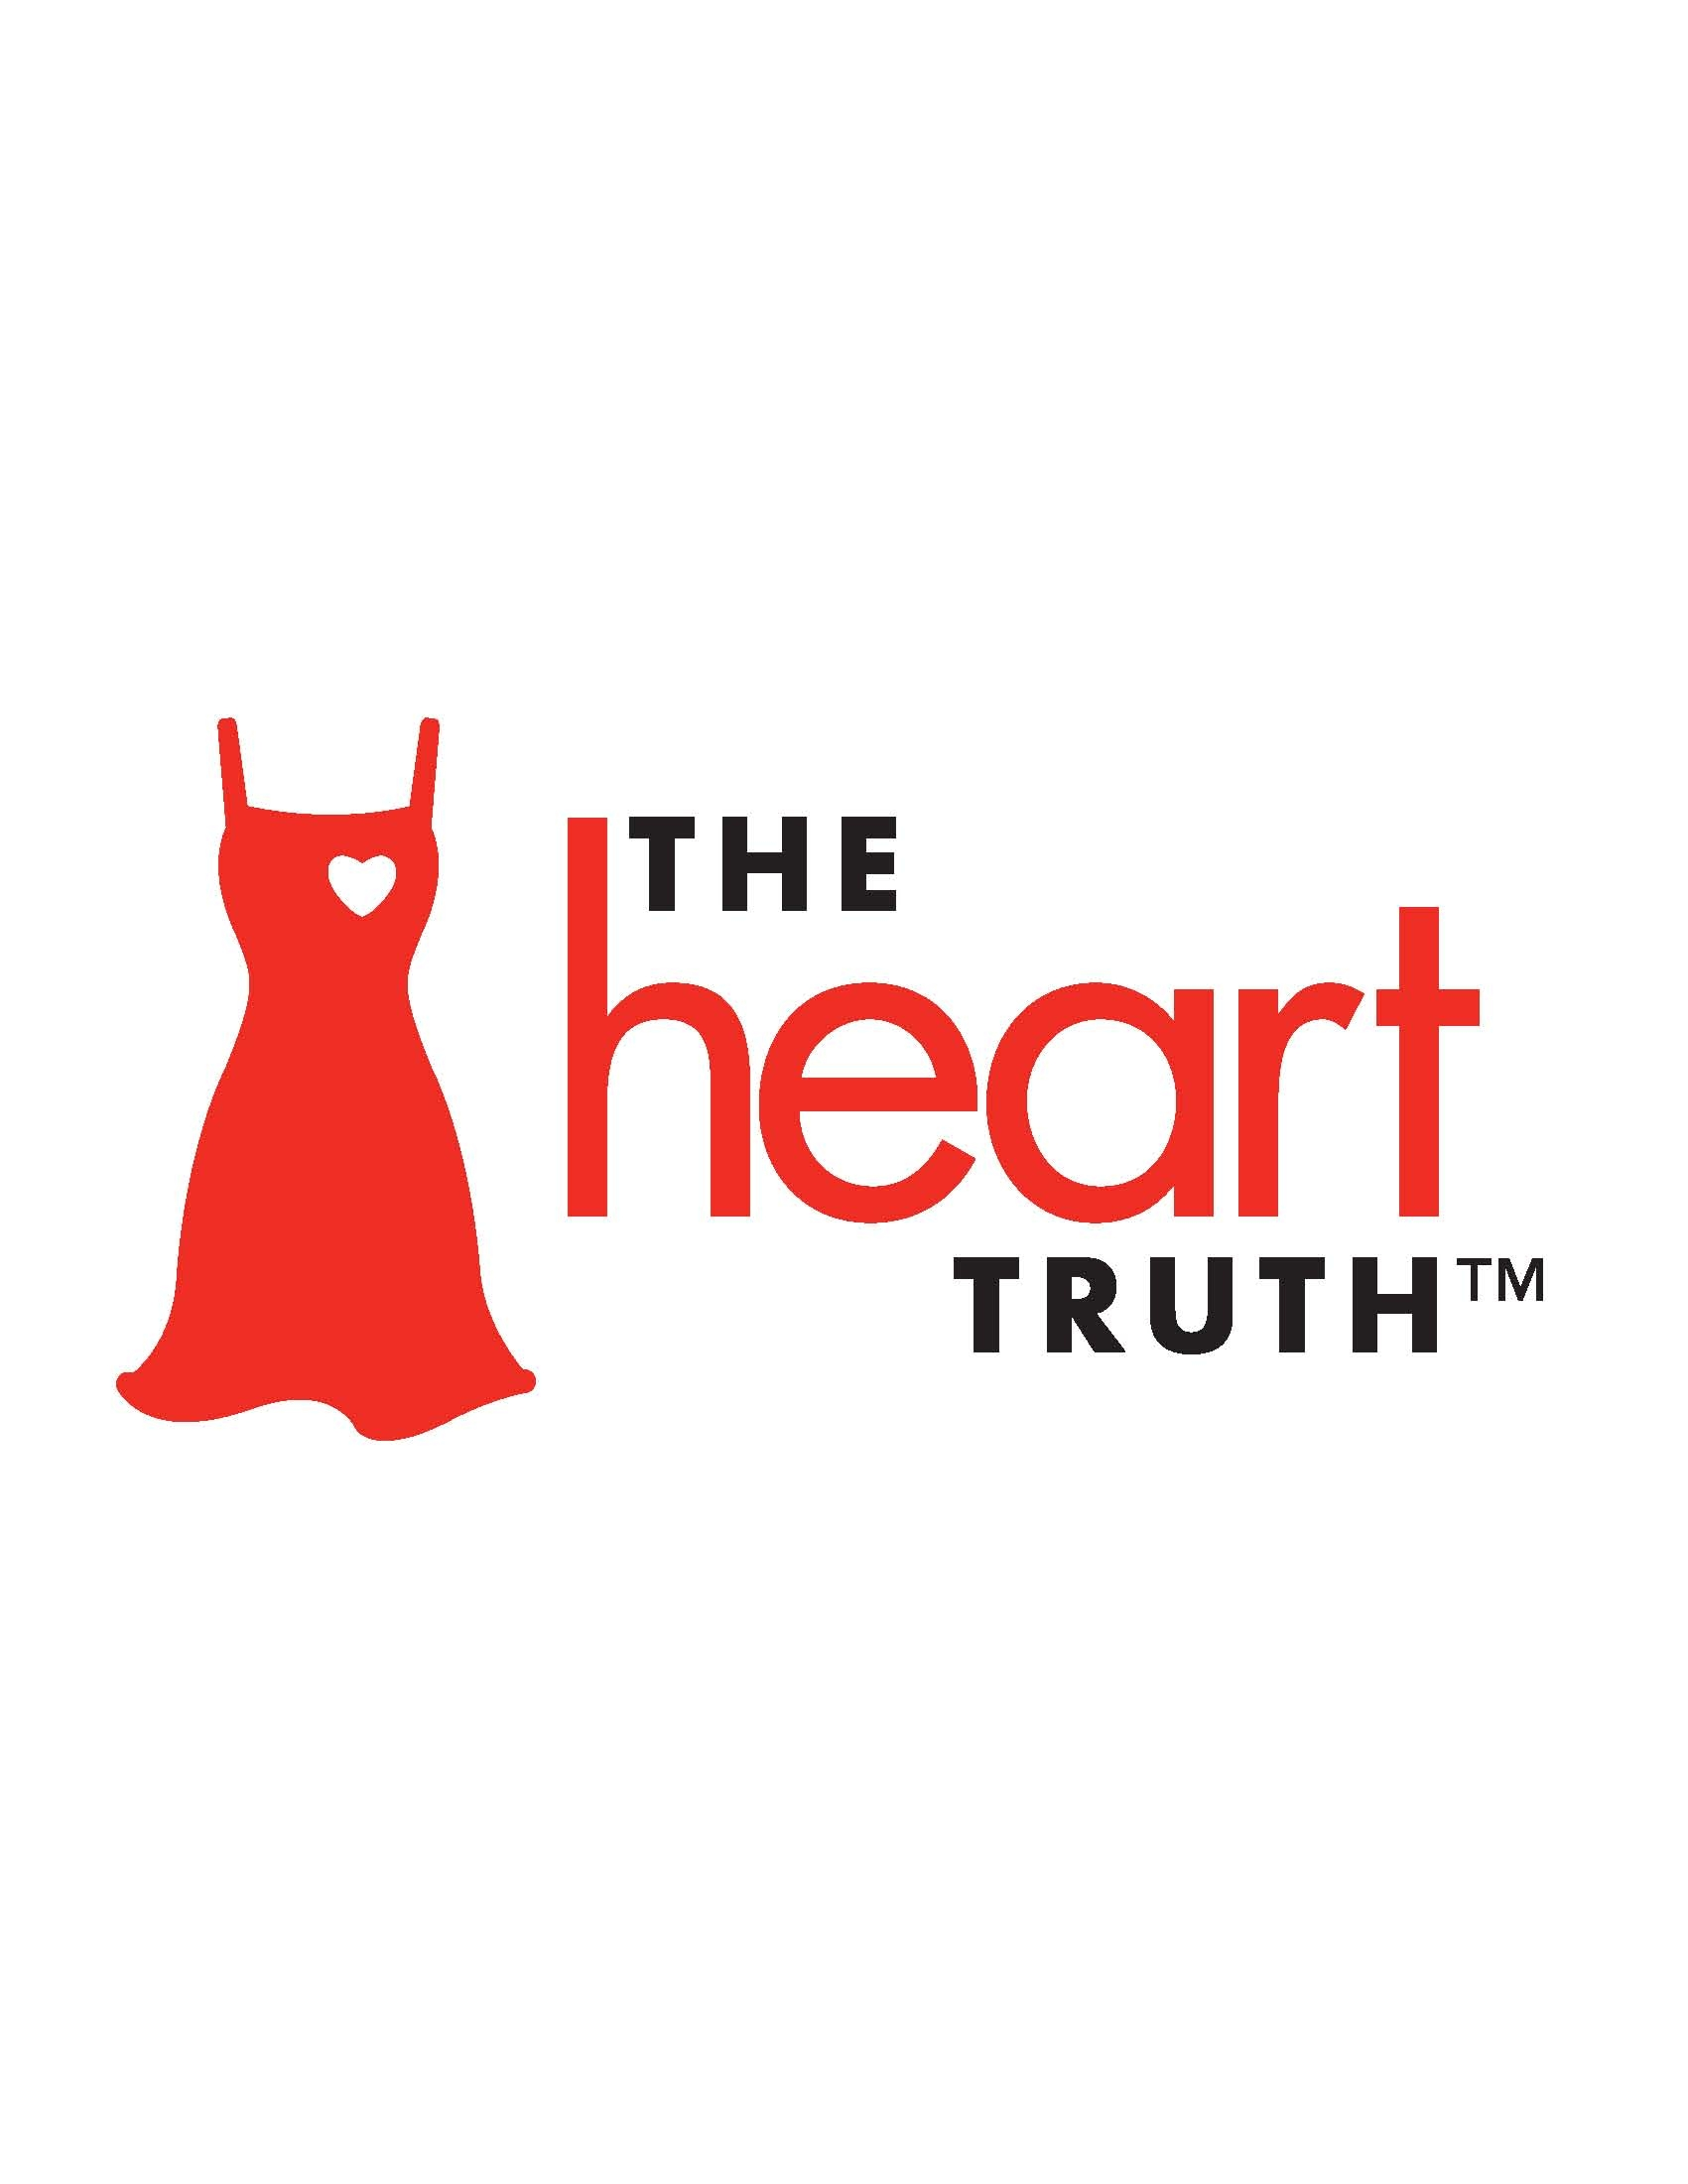 The Heart Truth Logo with a red dress on it